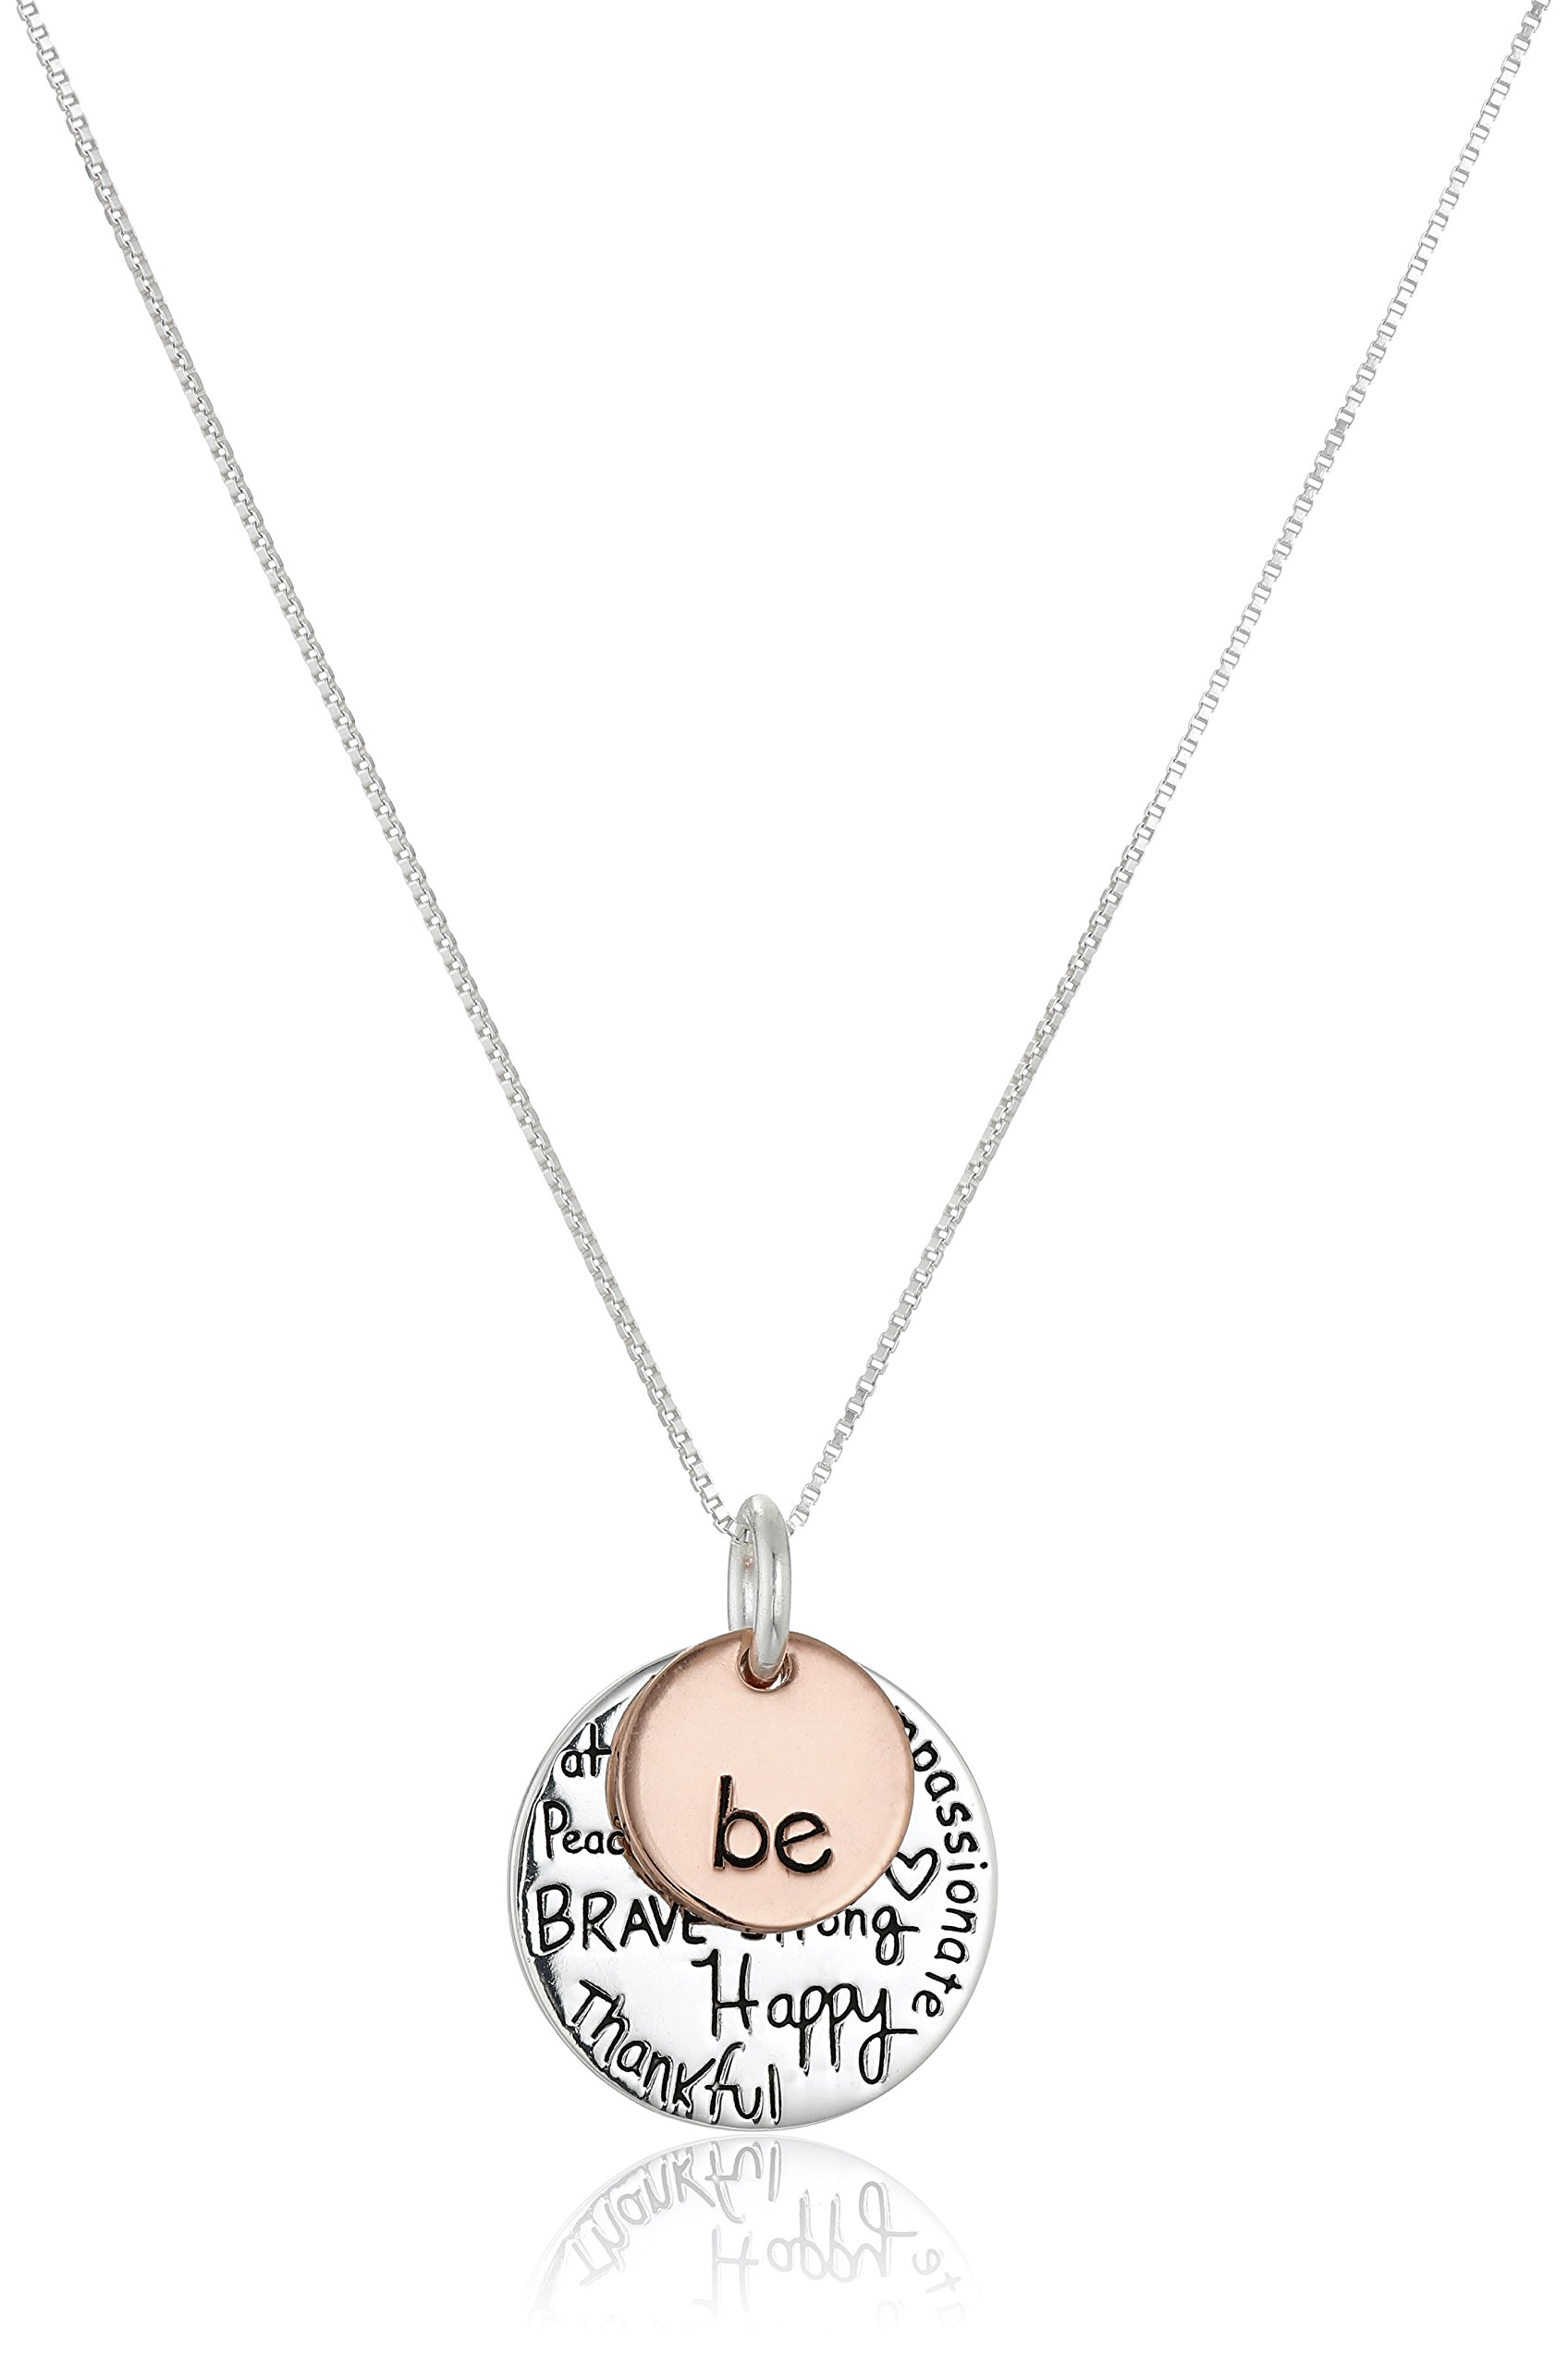 Two-Tone Sterling Silver ''Be'' Graffiti Charm Necklace, 18'' by Amazon Collection